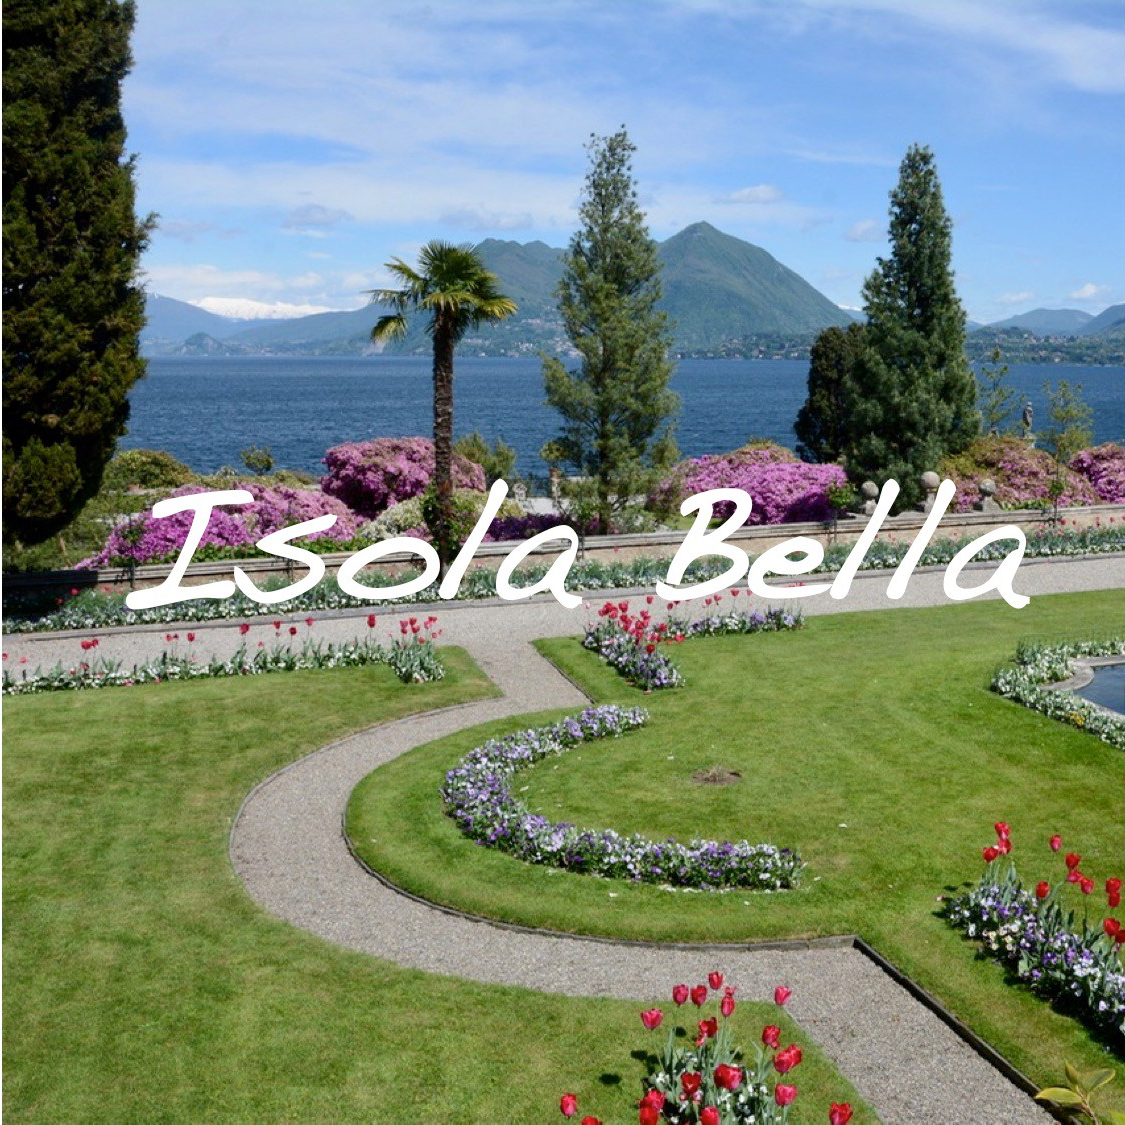 Isola Bella, Lago Maggiore, Italy | Visiting the Sumptuous Palazzo and Garden of Isola Bella